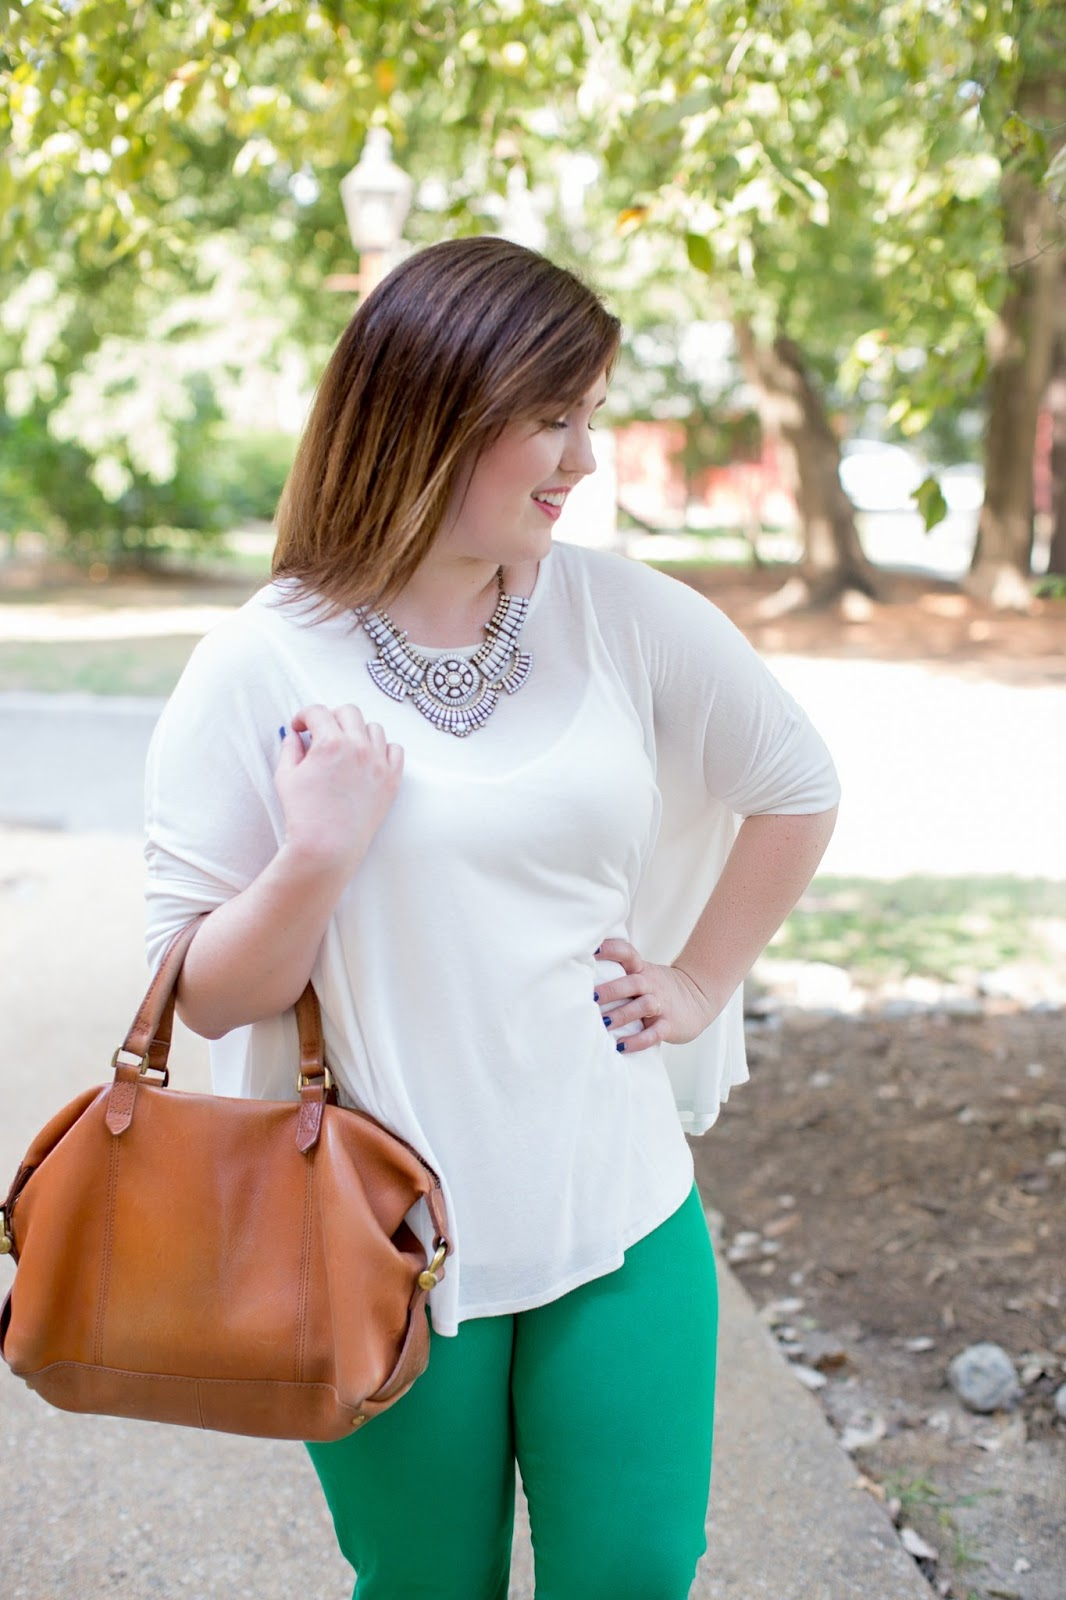 Rebecca Lately White Flowy Top Green Skinny Work Pants Suede Pumps Madewell Kensington Satchel